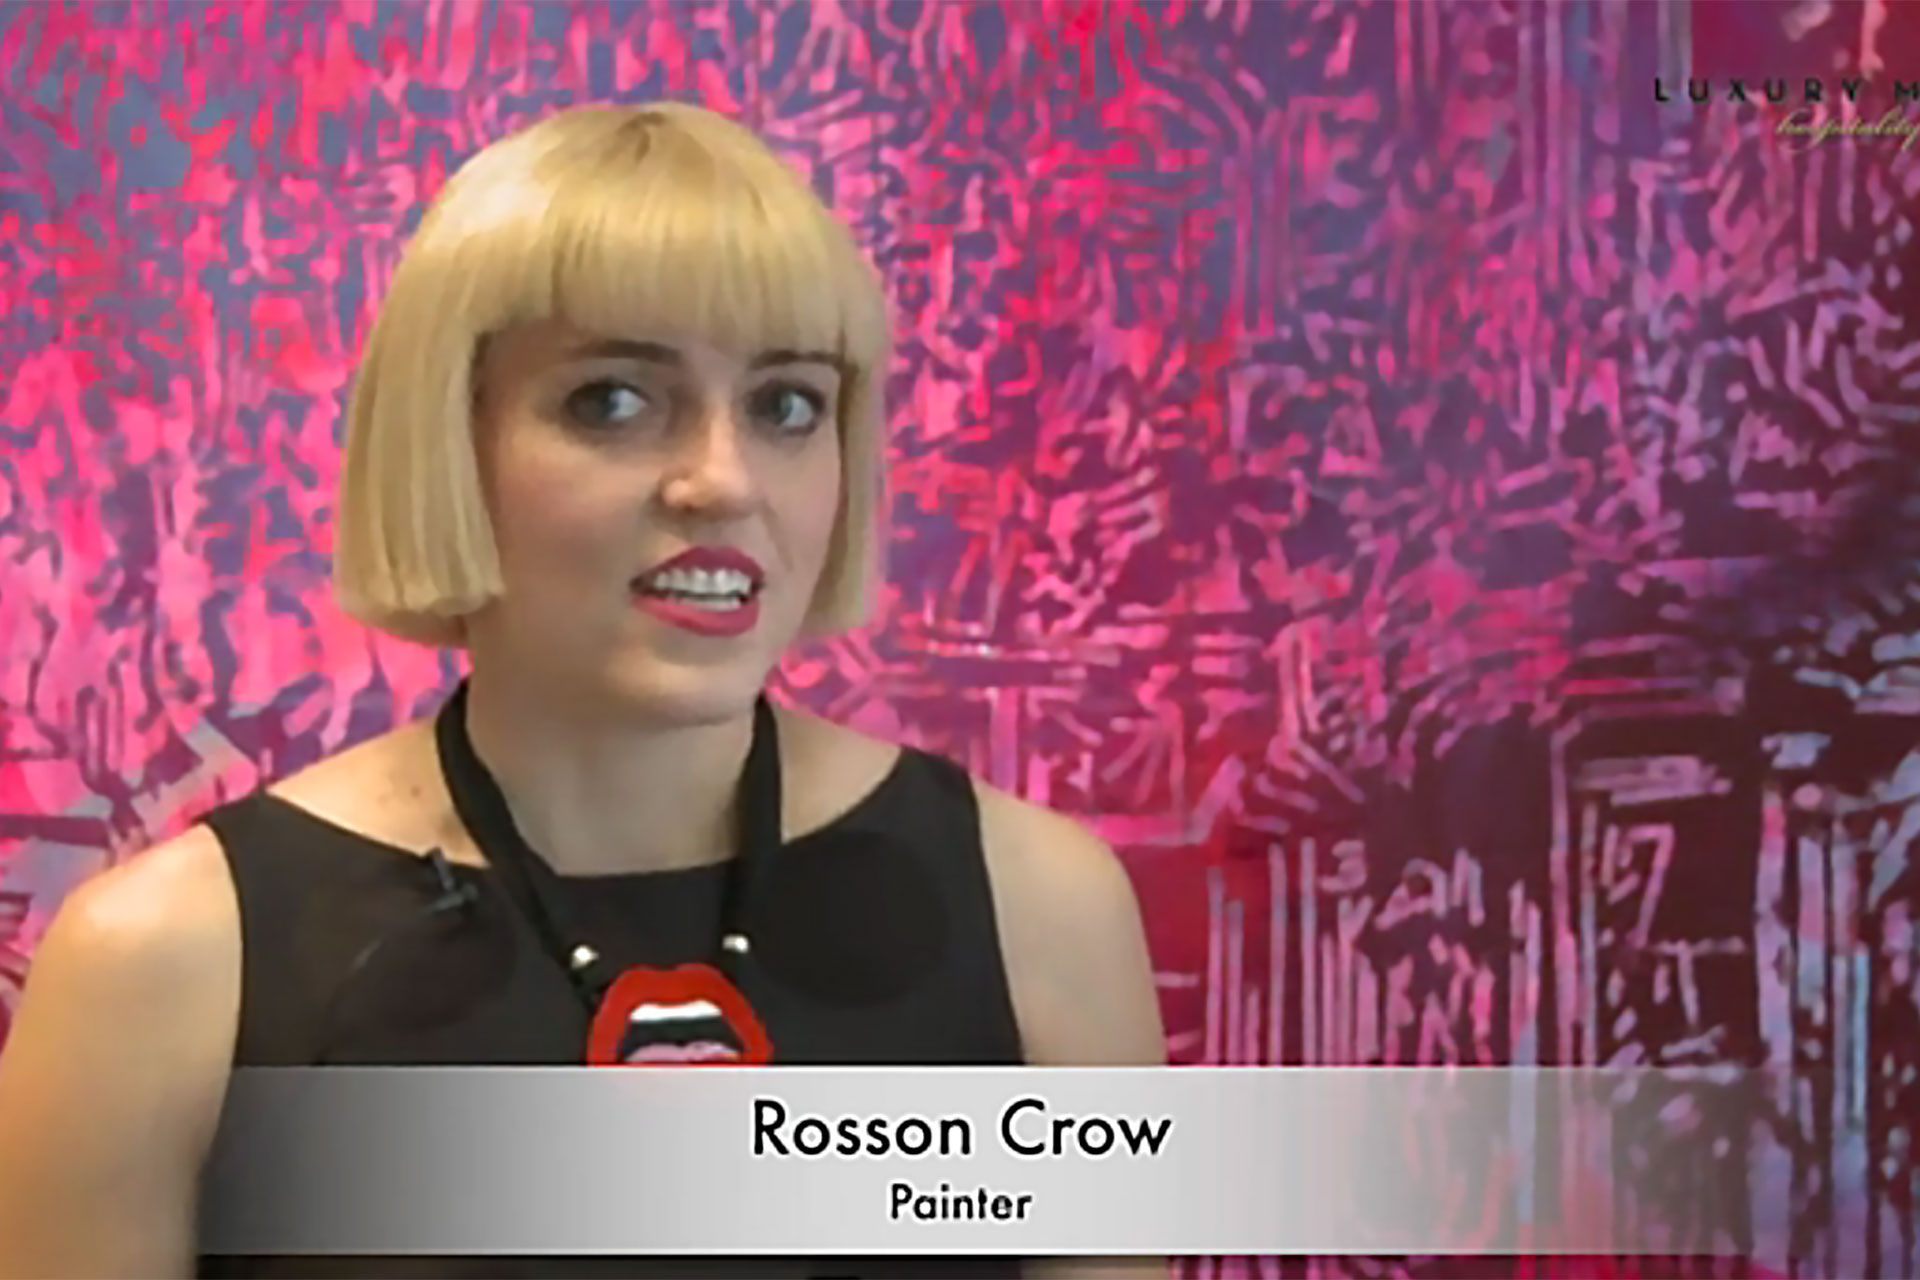 Rosson Crow. Hôtel Royal Monceau